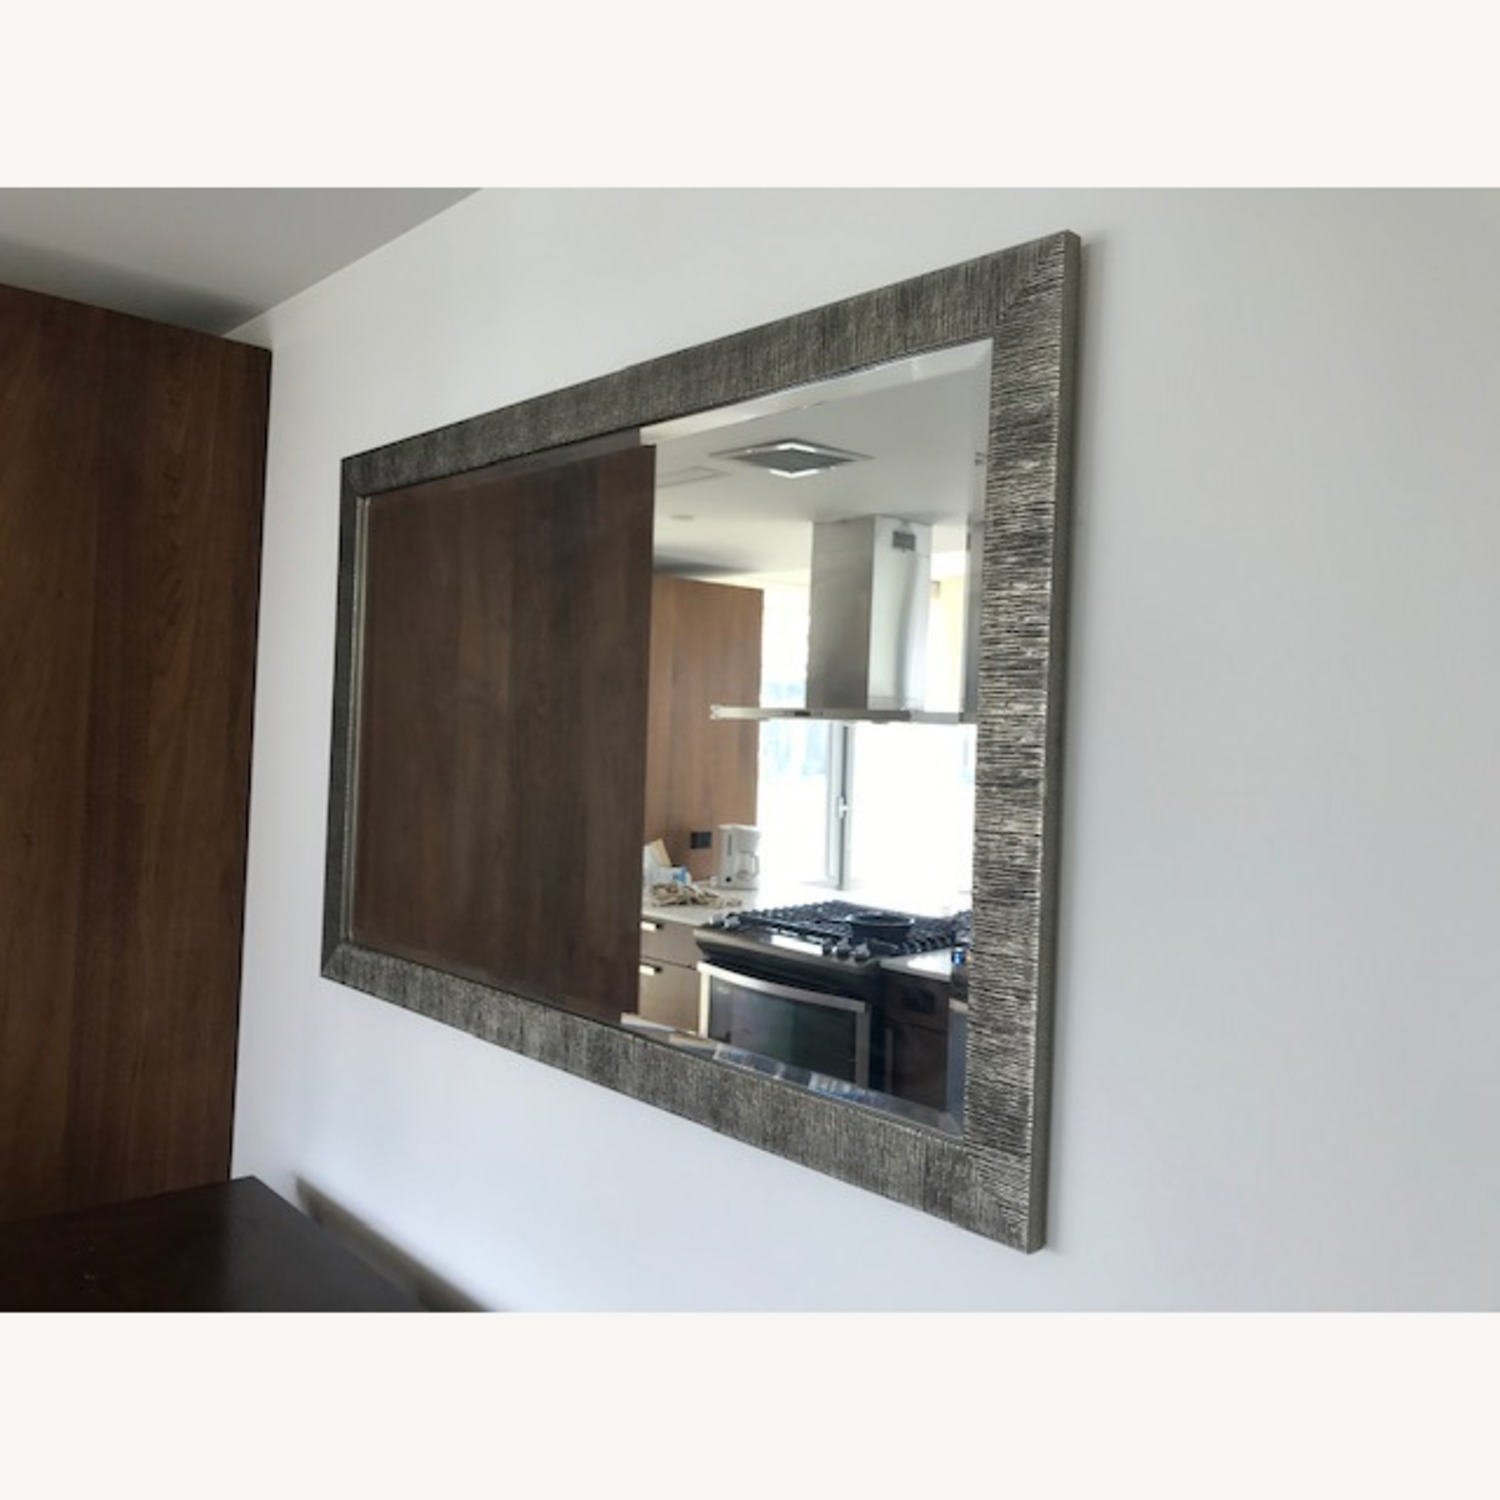 Crate & Barrel Siver Birch Wall Mirror - image-2